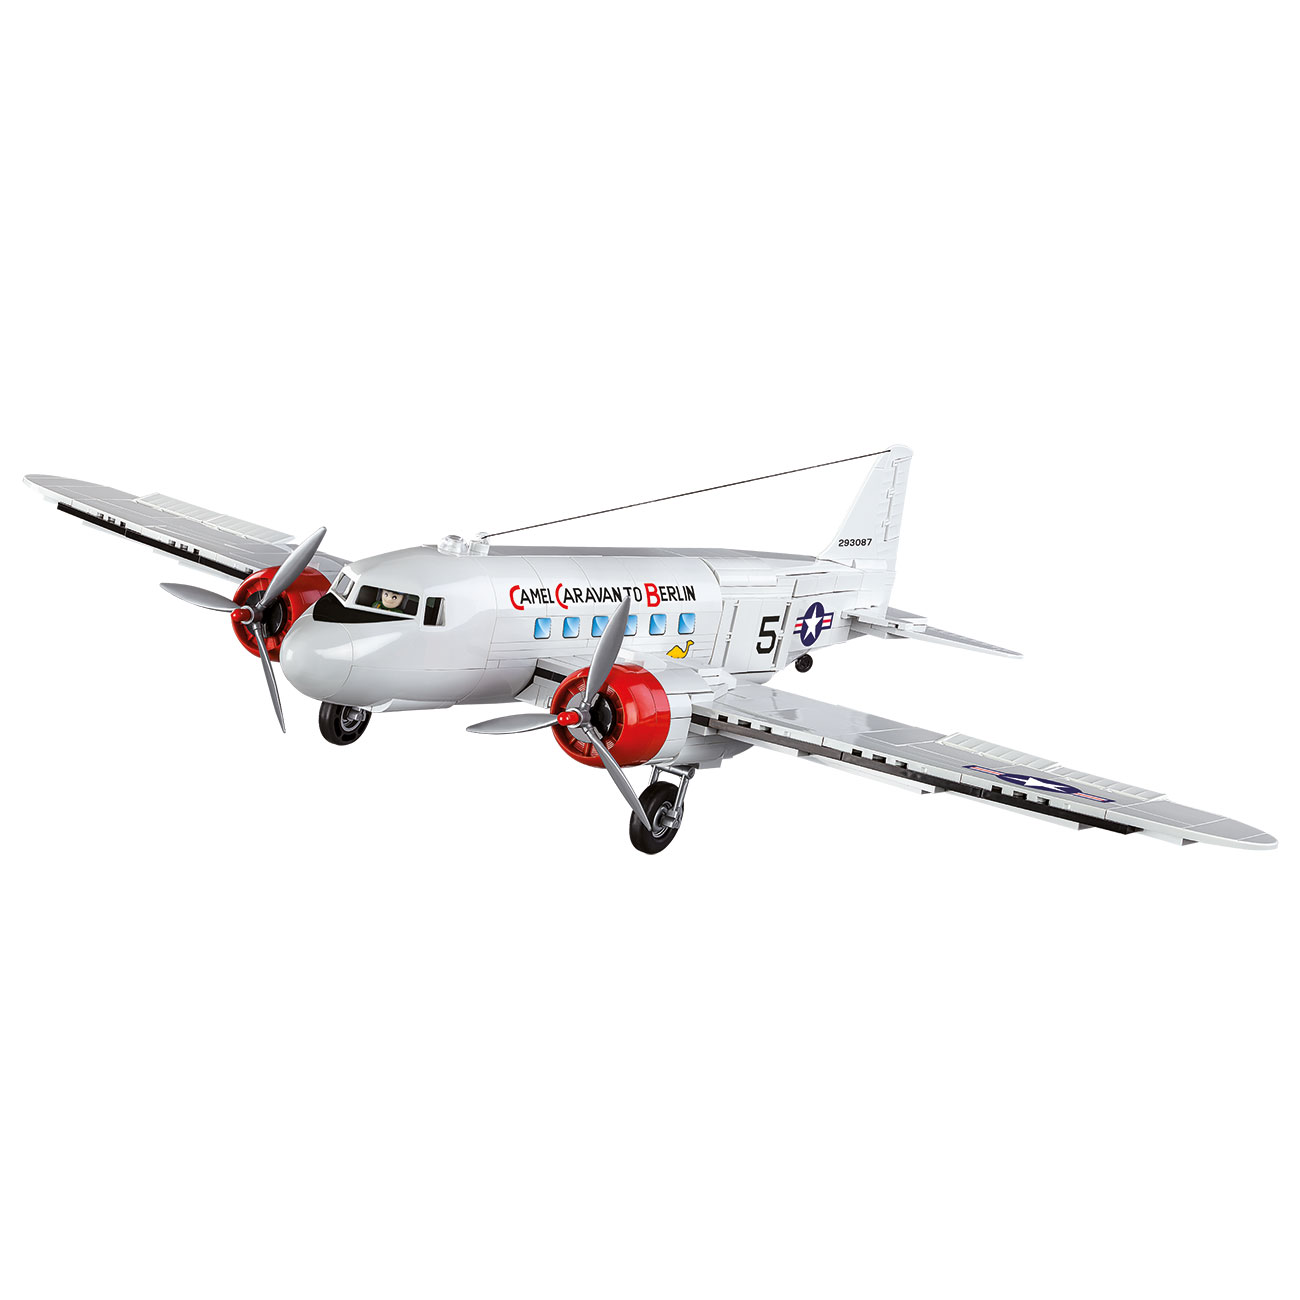 Cobi Historical Collection Bausatz Flugzeug C-47 Skytrain - Berlin Airlift 540 Teile 5702 0